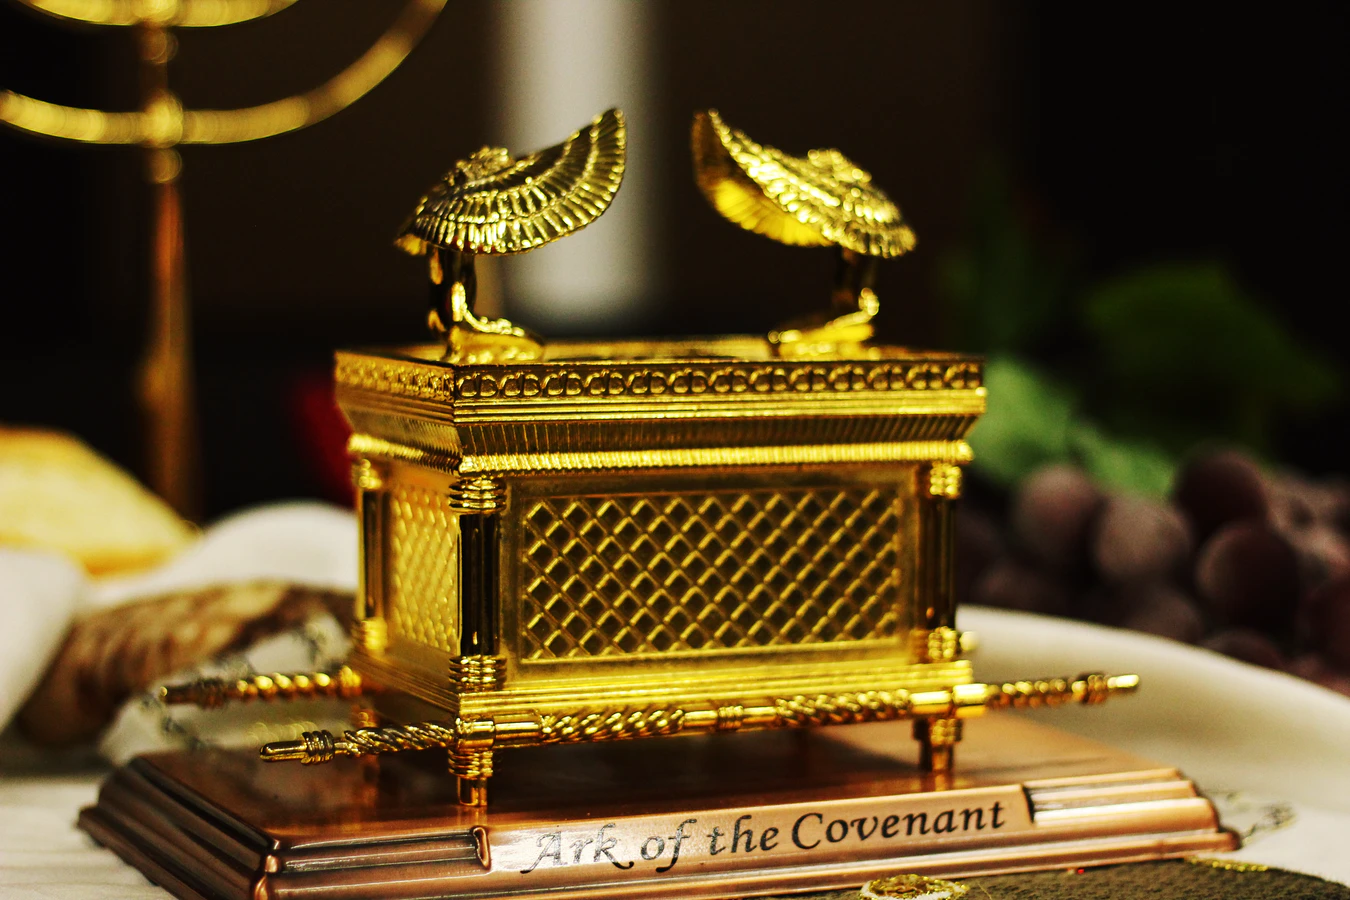 Was the Ark of the Covenant an Idol?